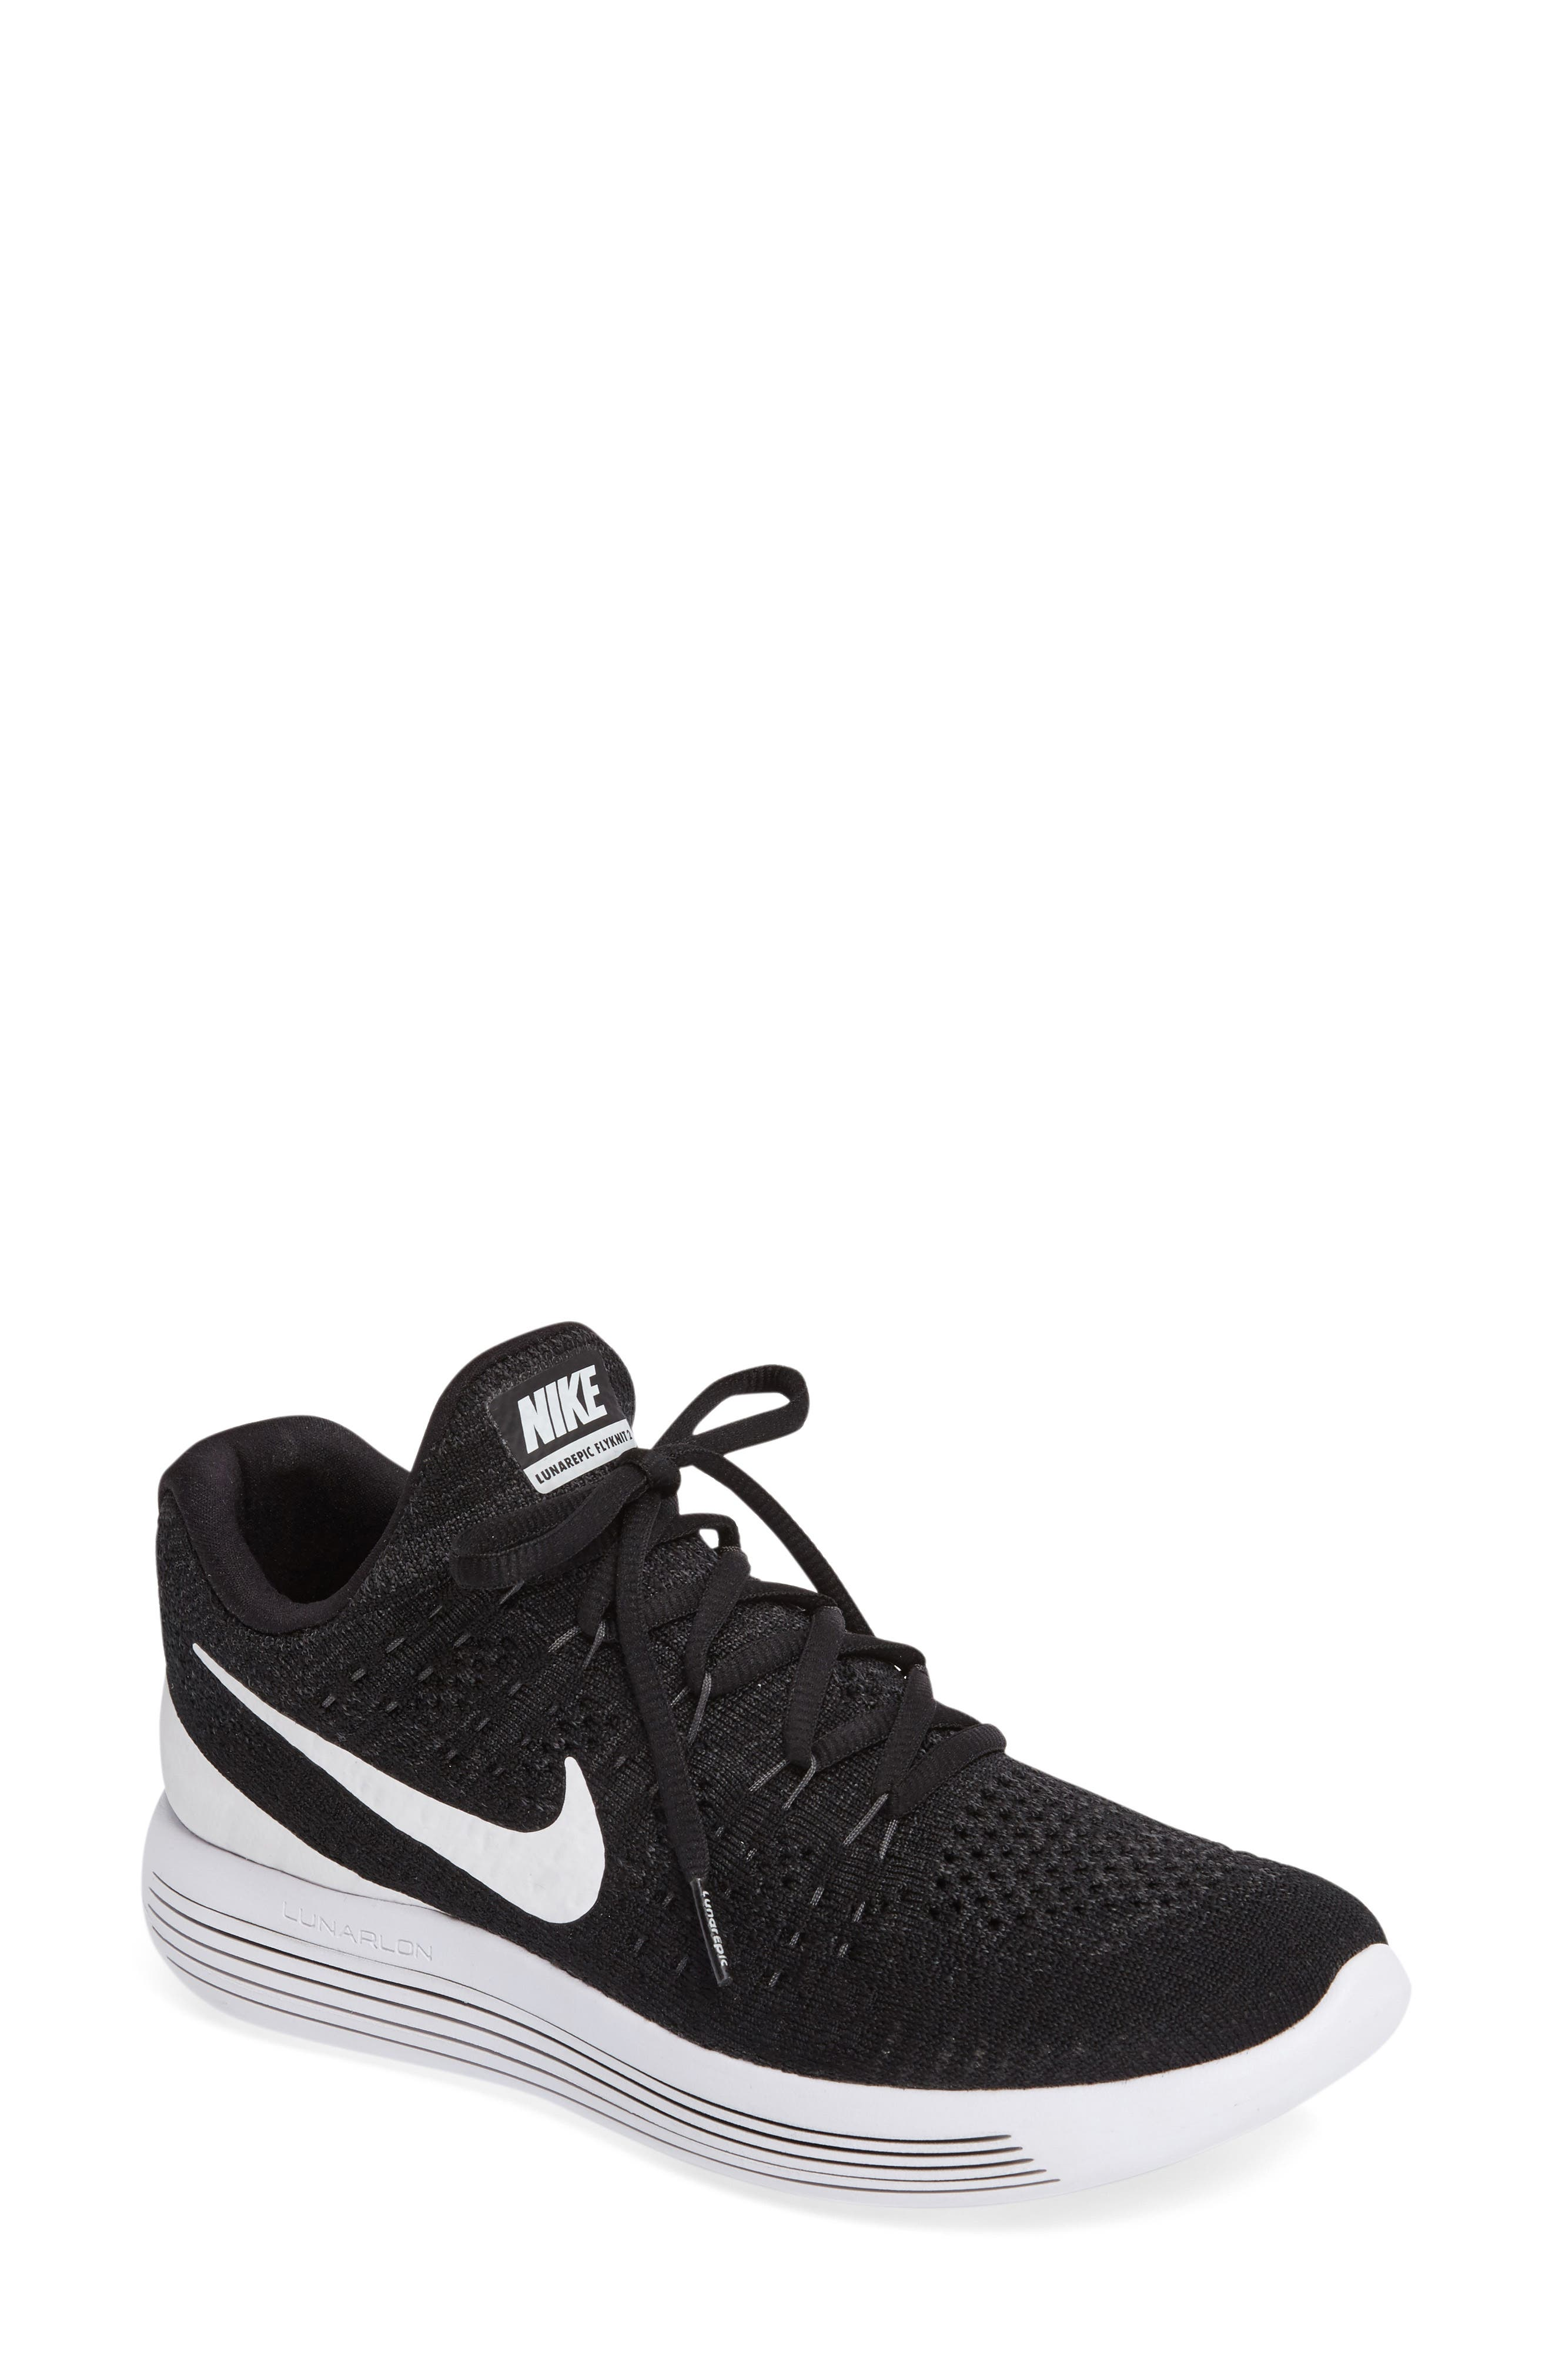 Nike LunarEpic Low Flyknit 2 Running Shoe (Women)